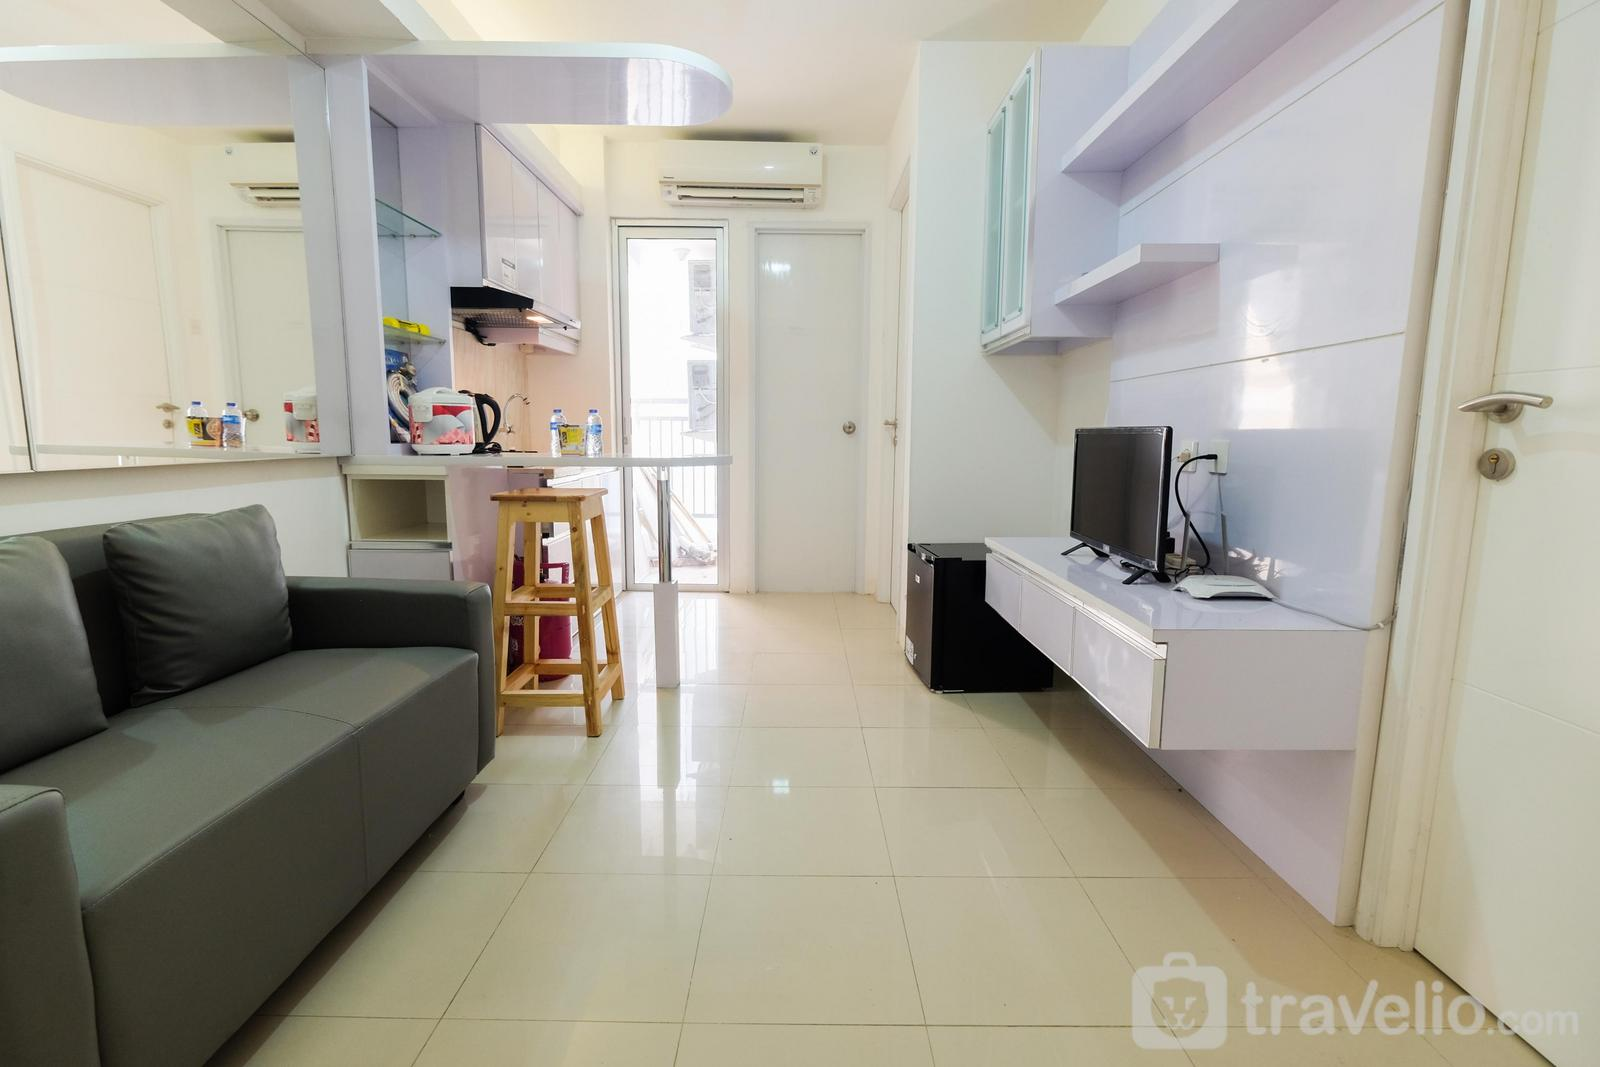 Bassura City Cipinang - Simply Living 2BR at Bassura City Apartment By Travelio